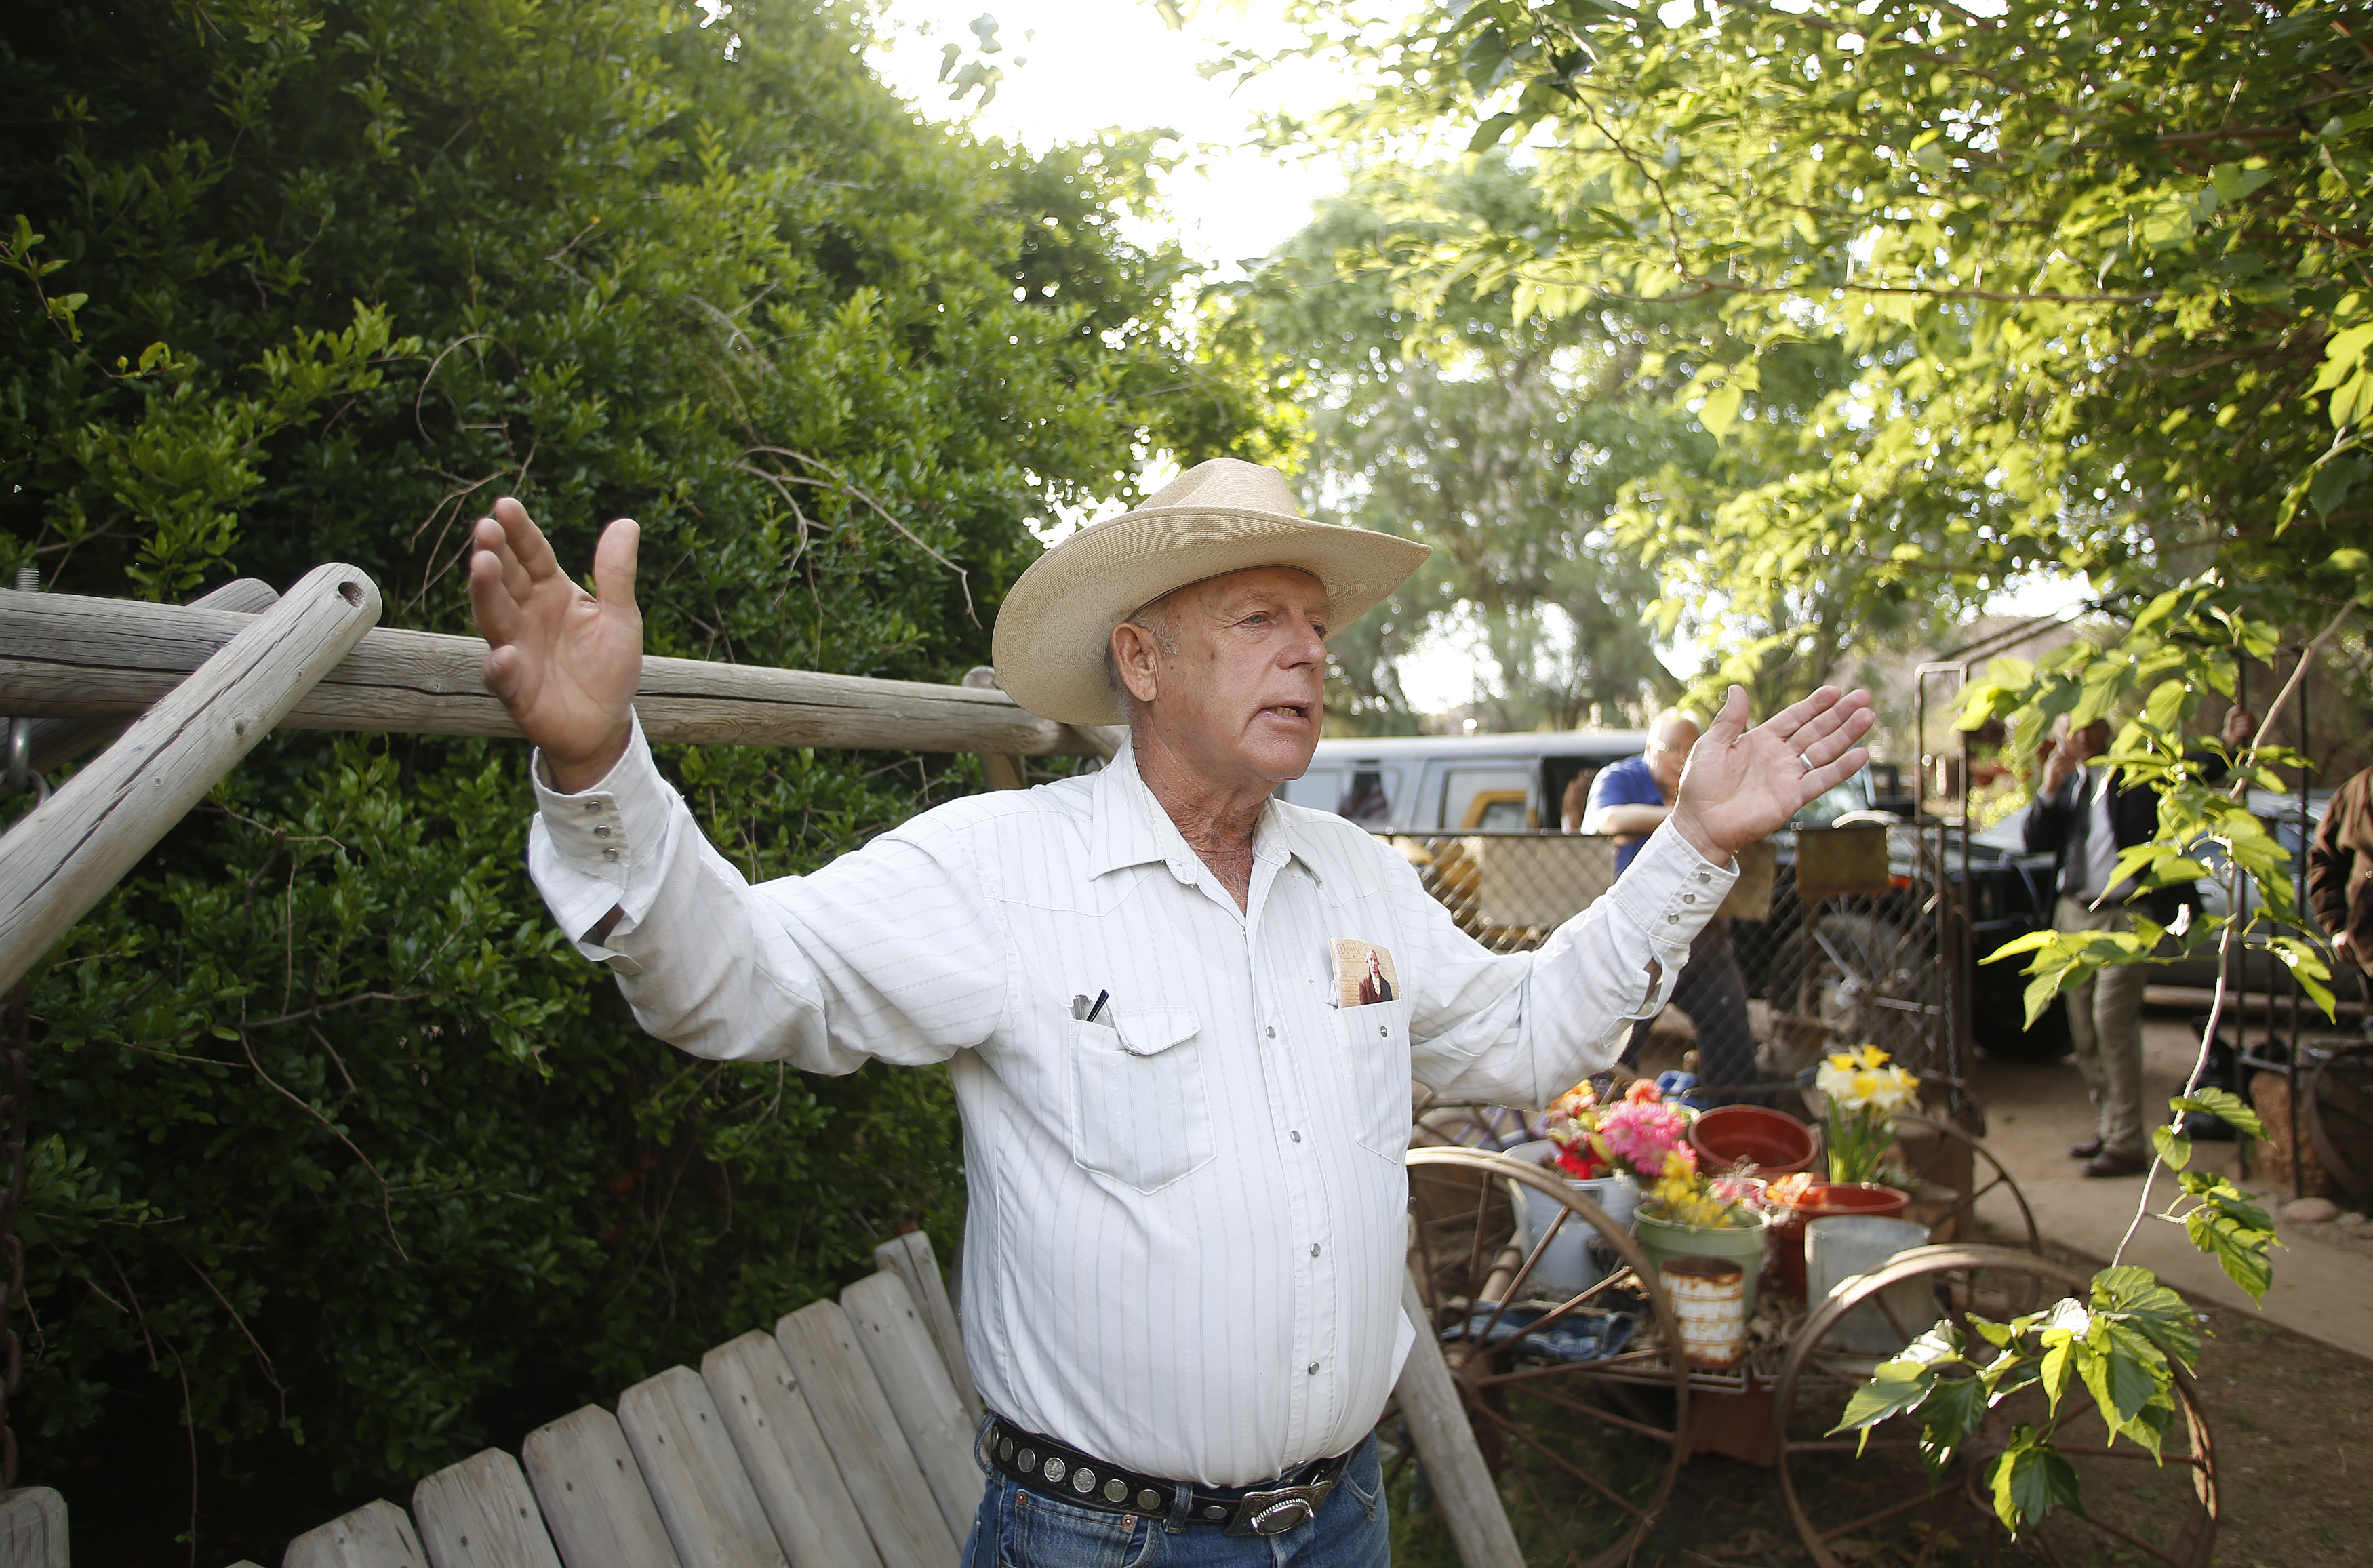 Rancher Cliven Bundy gestures at his home in Bunkerville, Nevada April 12, 2014. He has called on sheriffs to join him in a quixotic crusade to disarm the Federal government